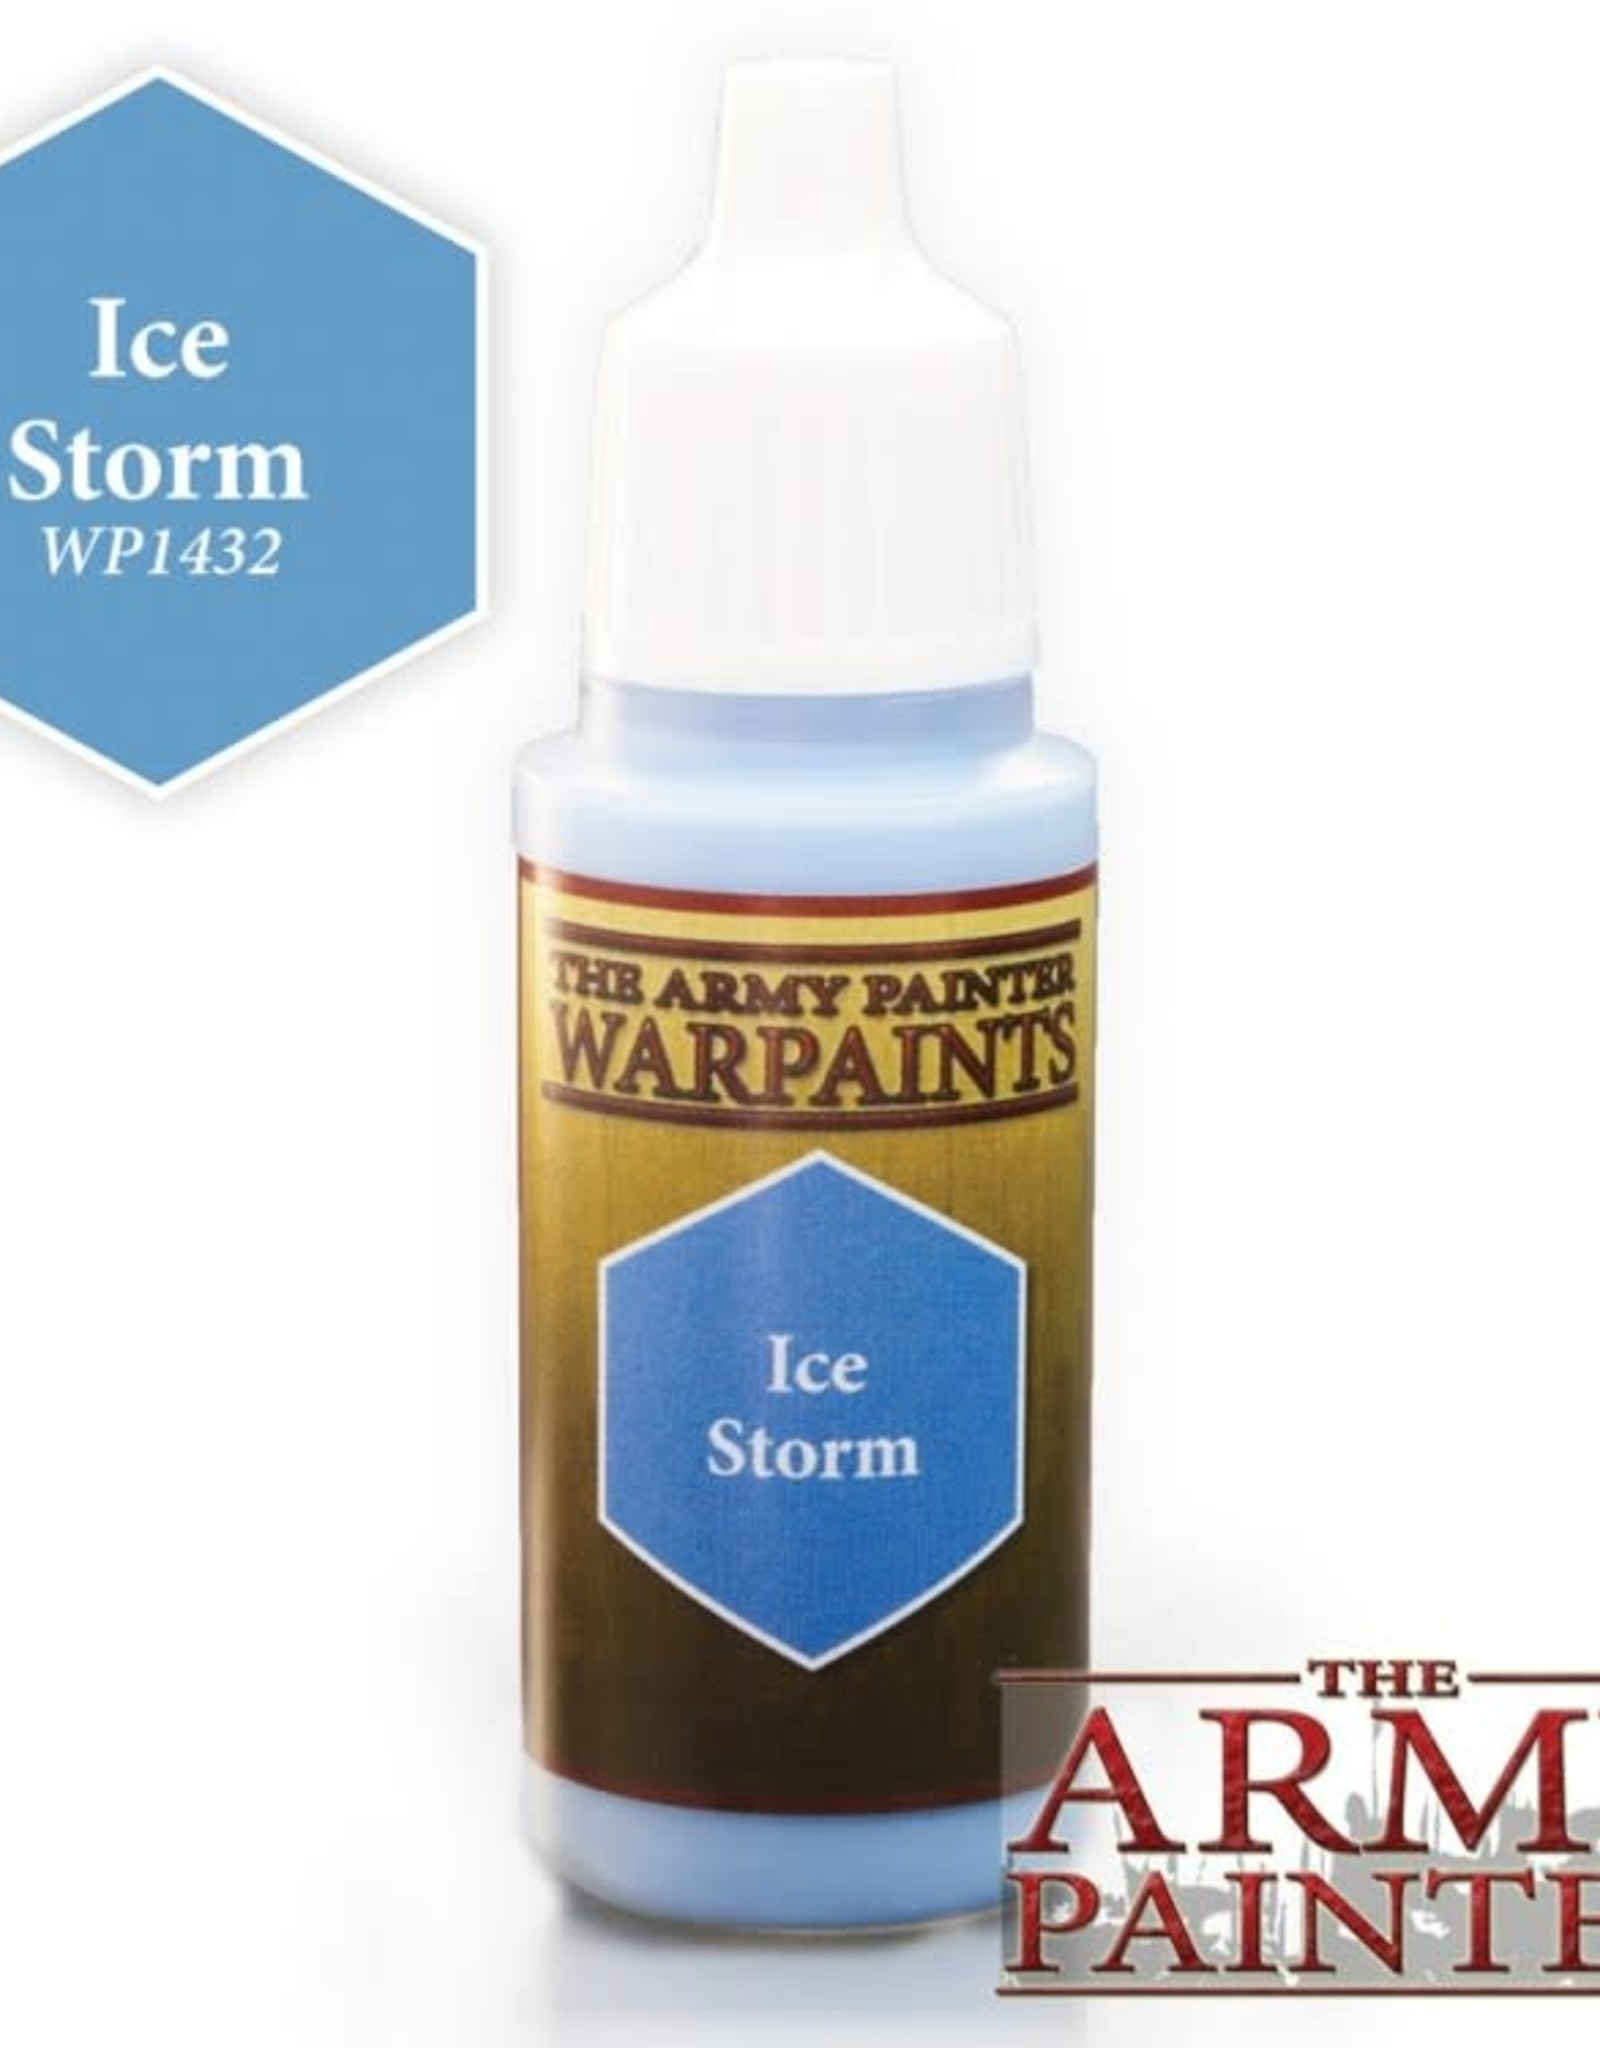 The Army Painter Warpaints - Ice Storm